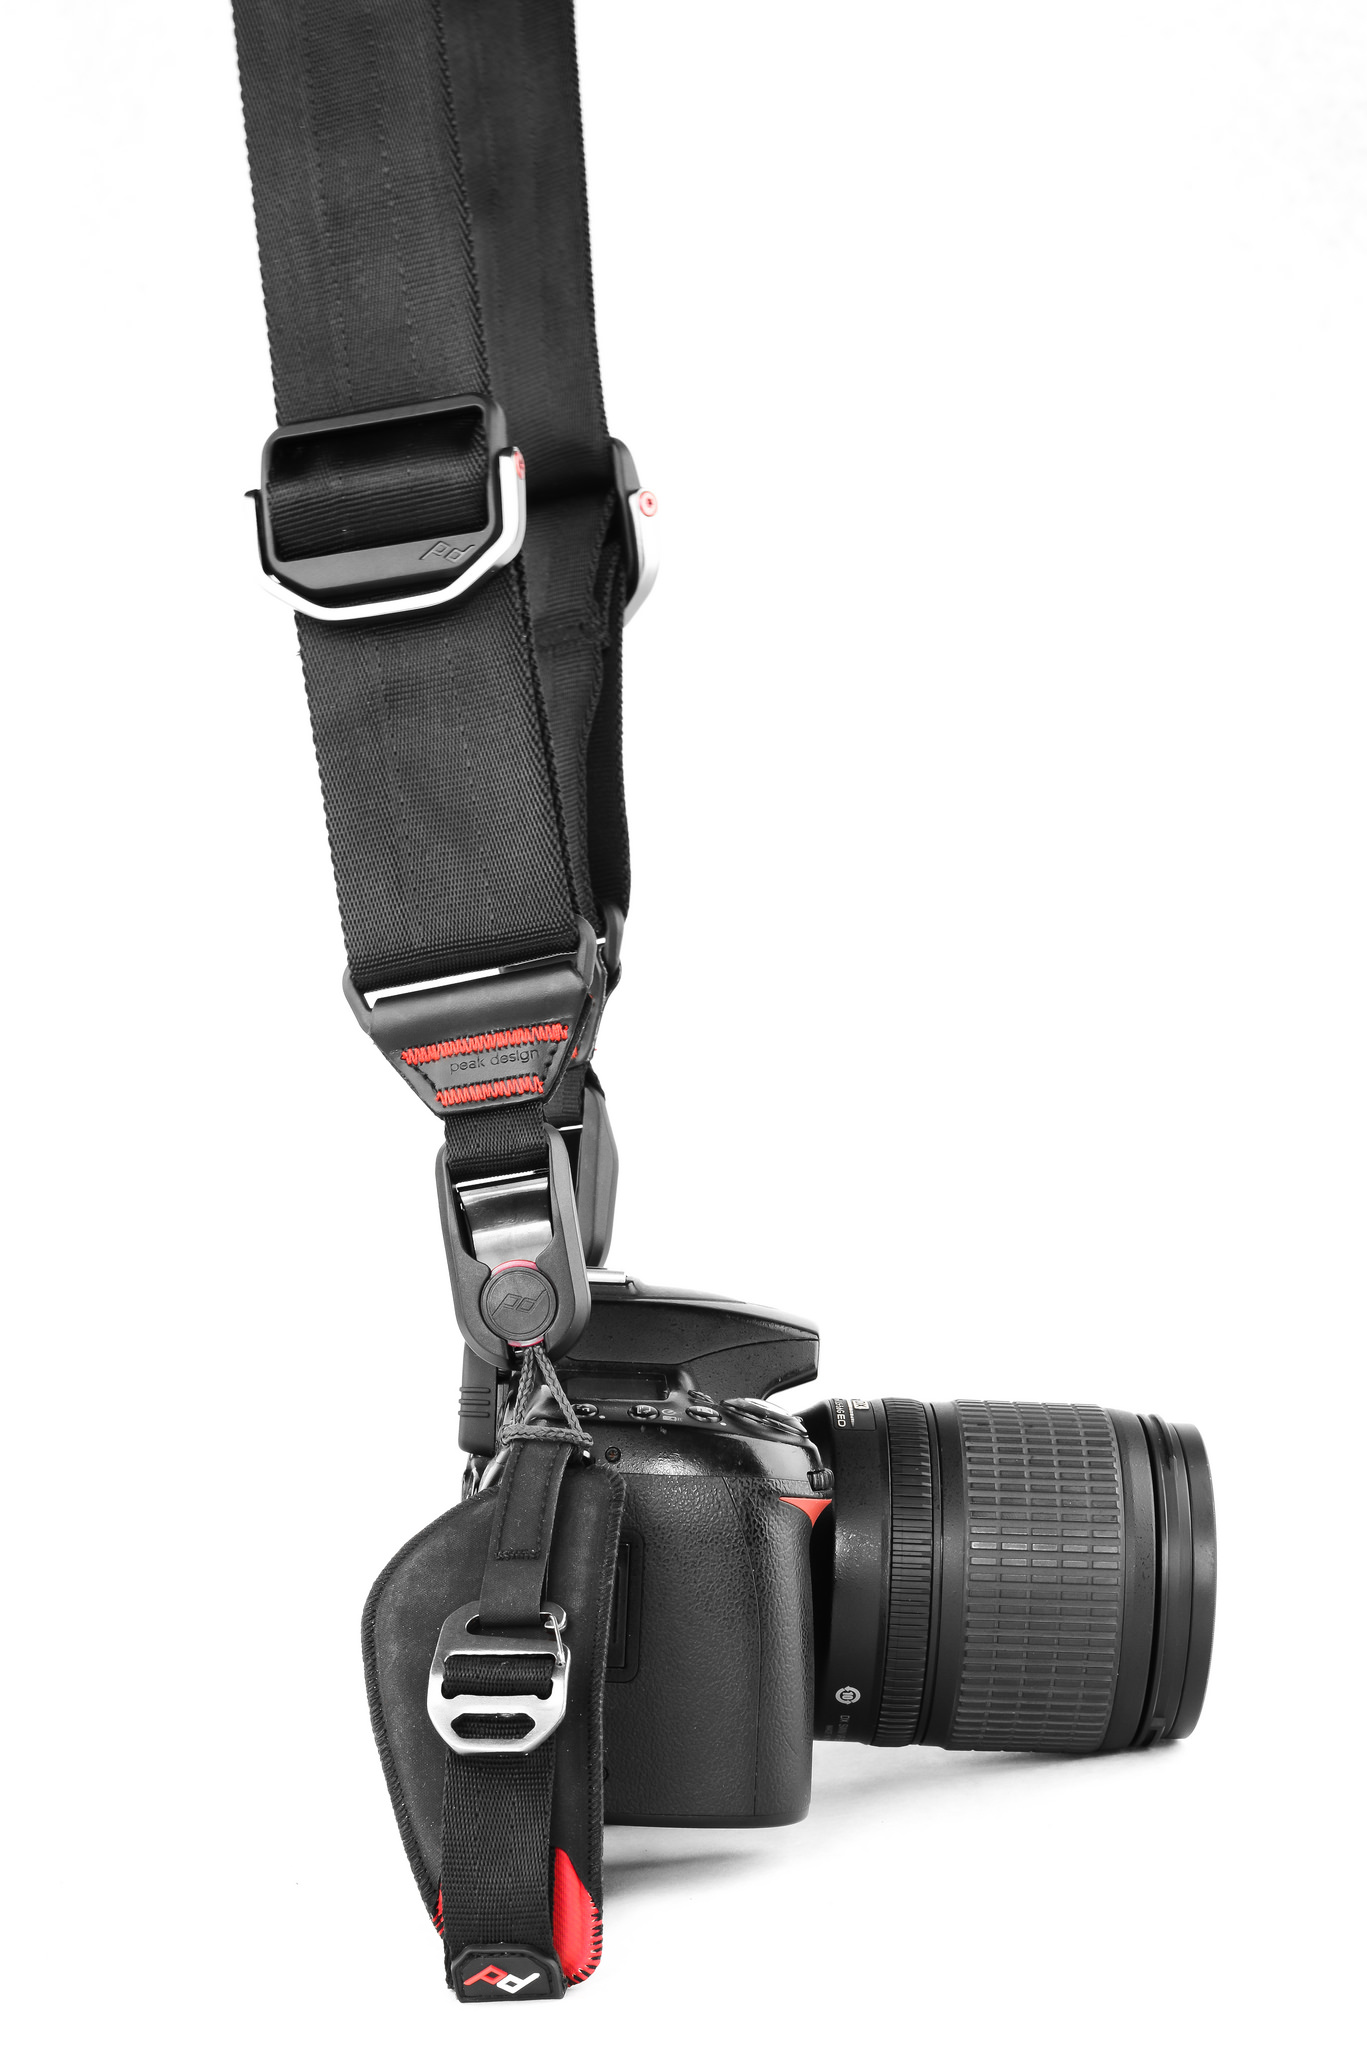 Save Your Neck And Lose That Strap Photofocus Peak Design Lens Kit Nikon F Mount Designs Slide Clutch Installed Photo By